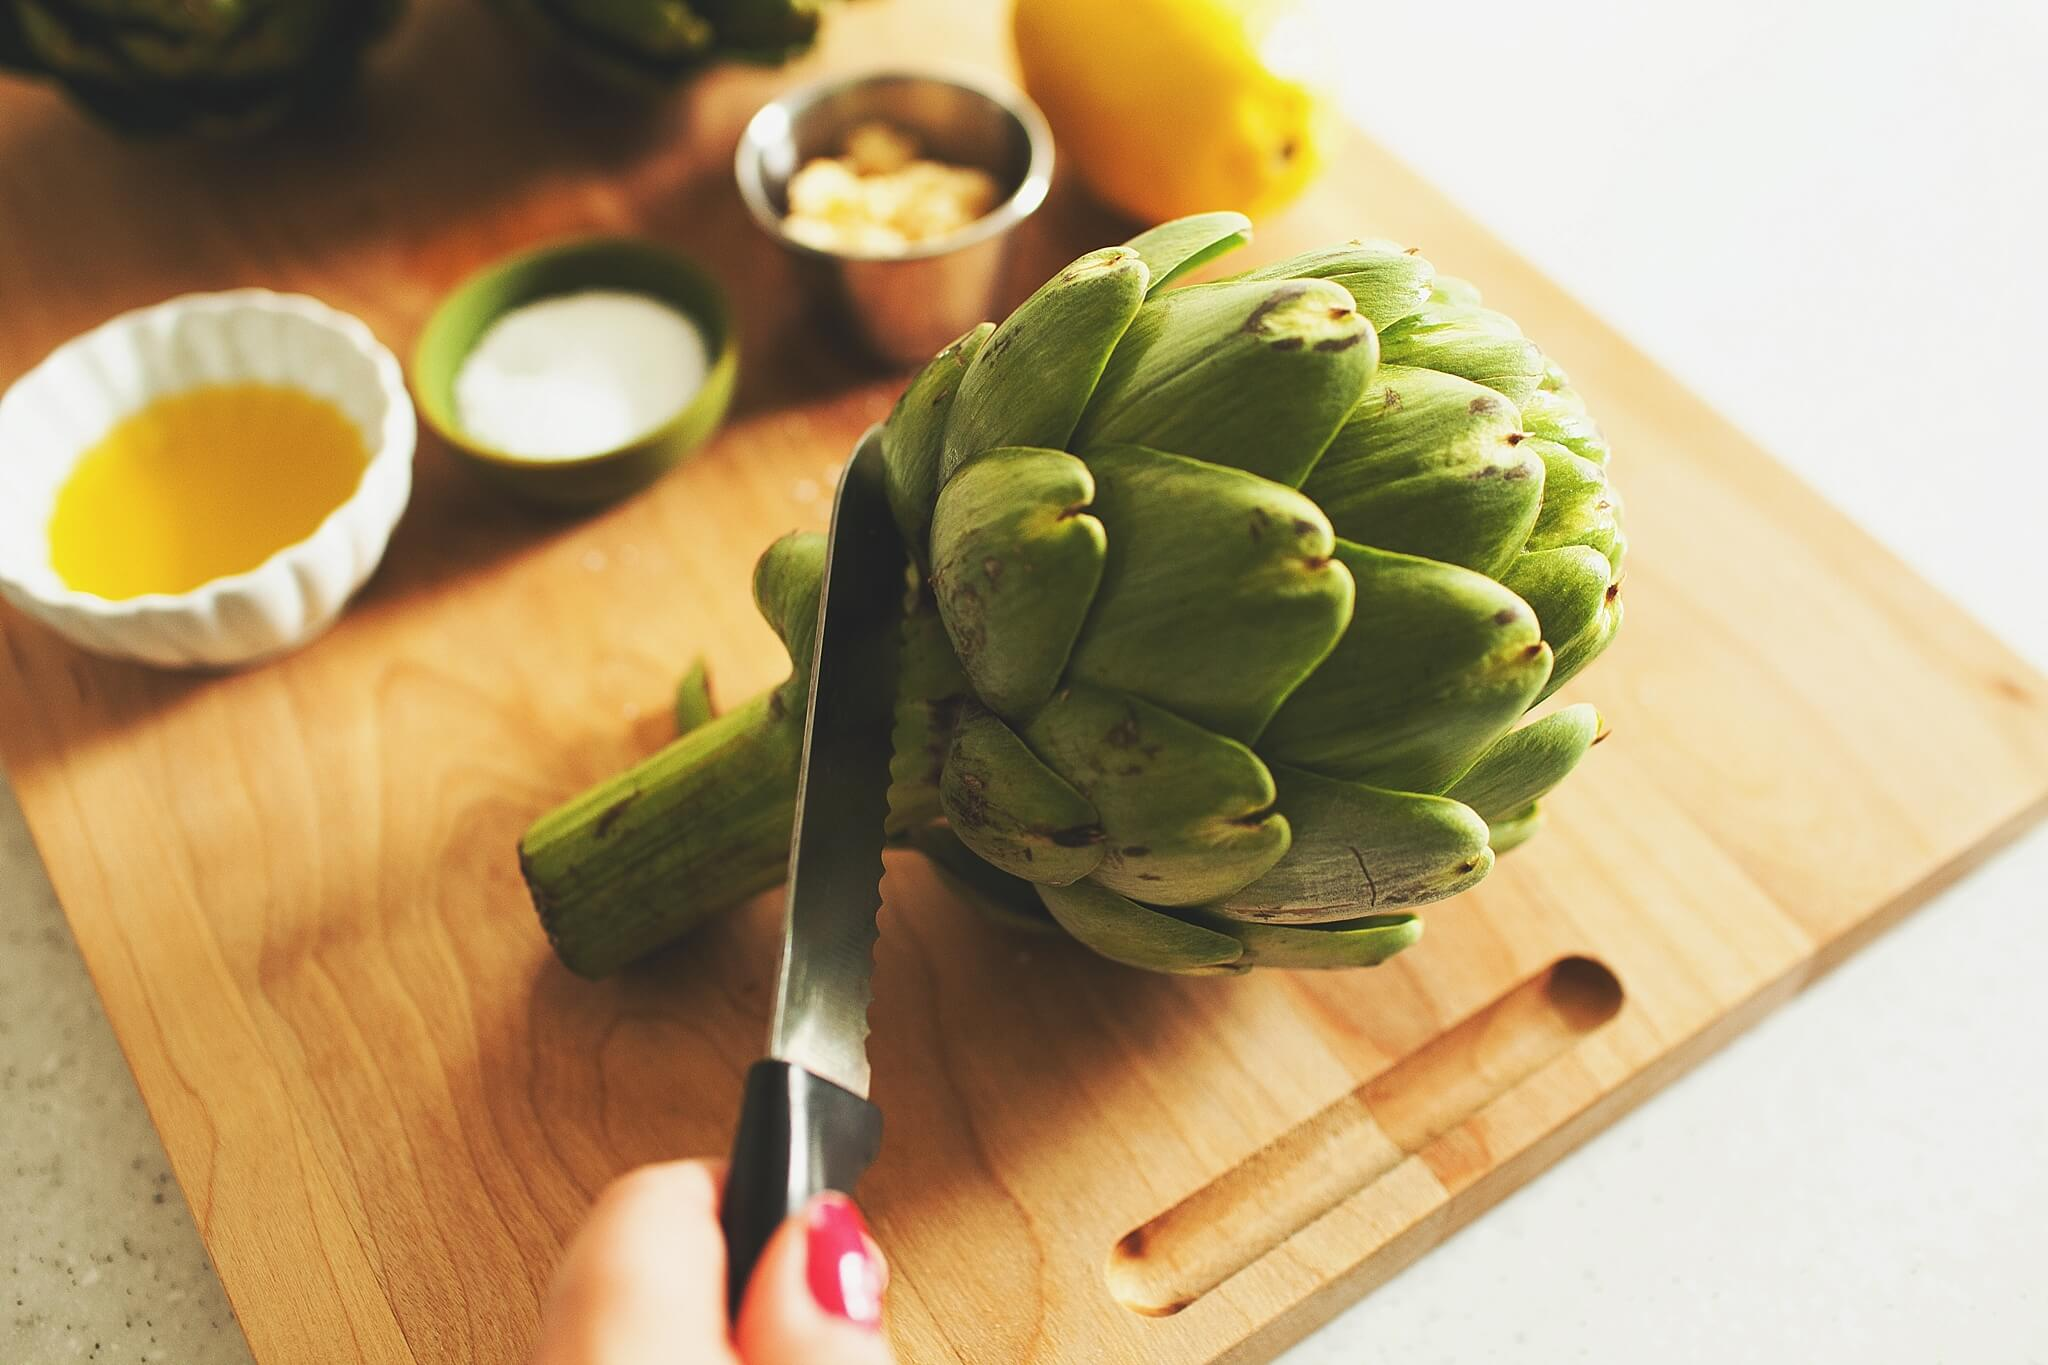 How to Cook Crockpot Artichokes: Step 2 trim stem